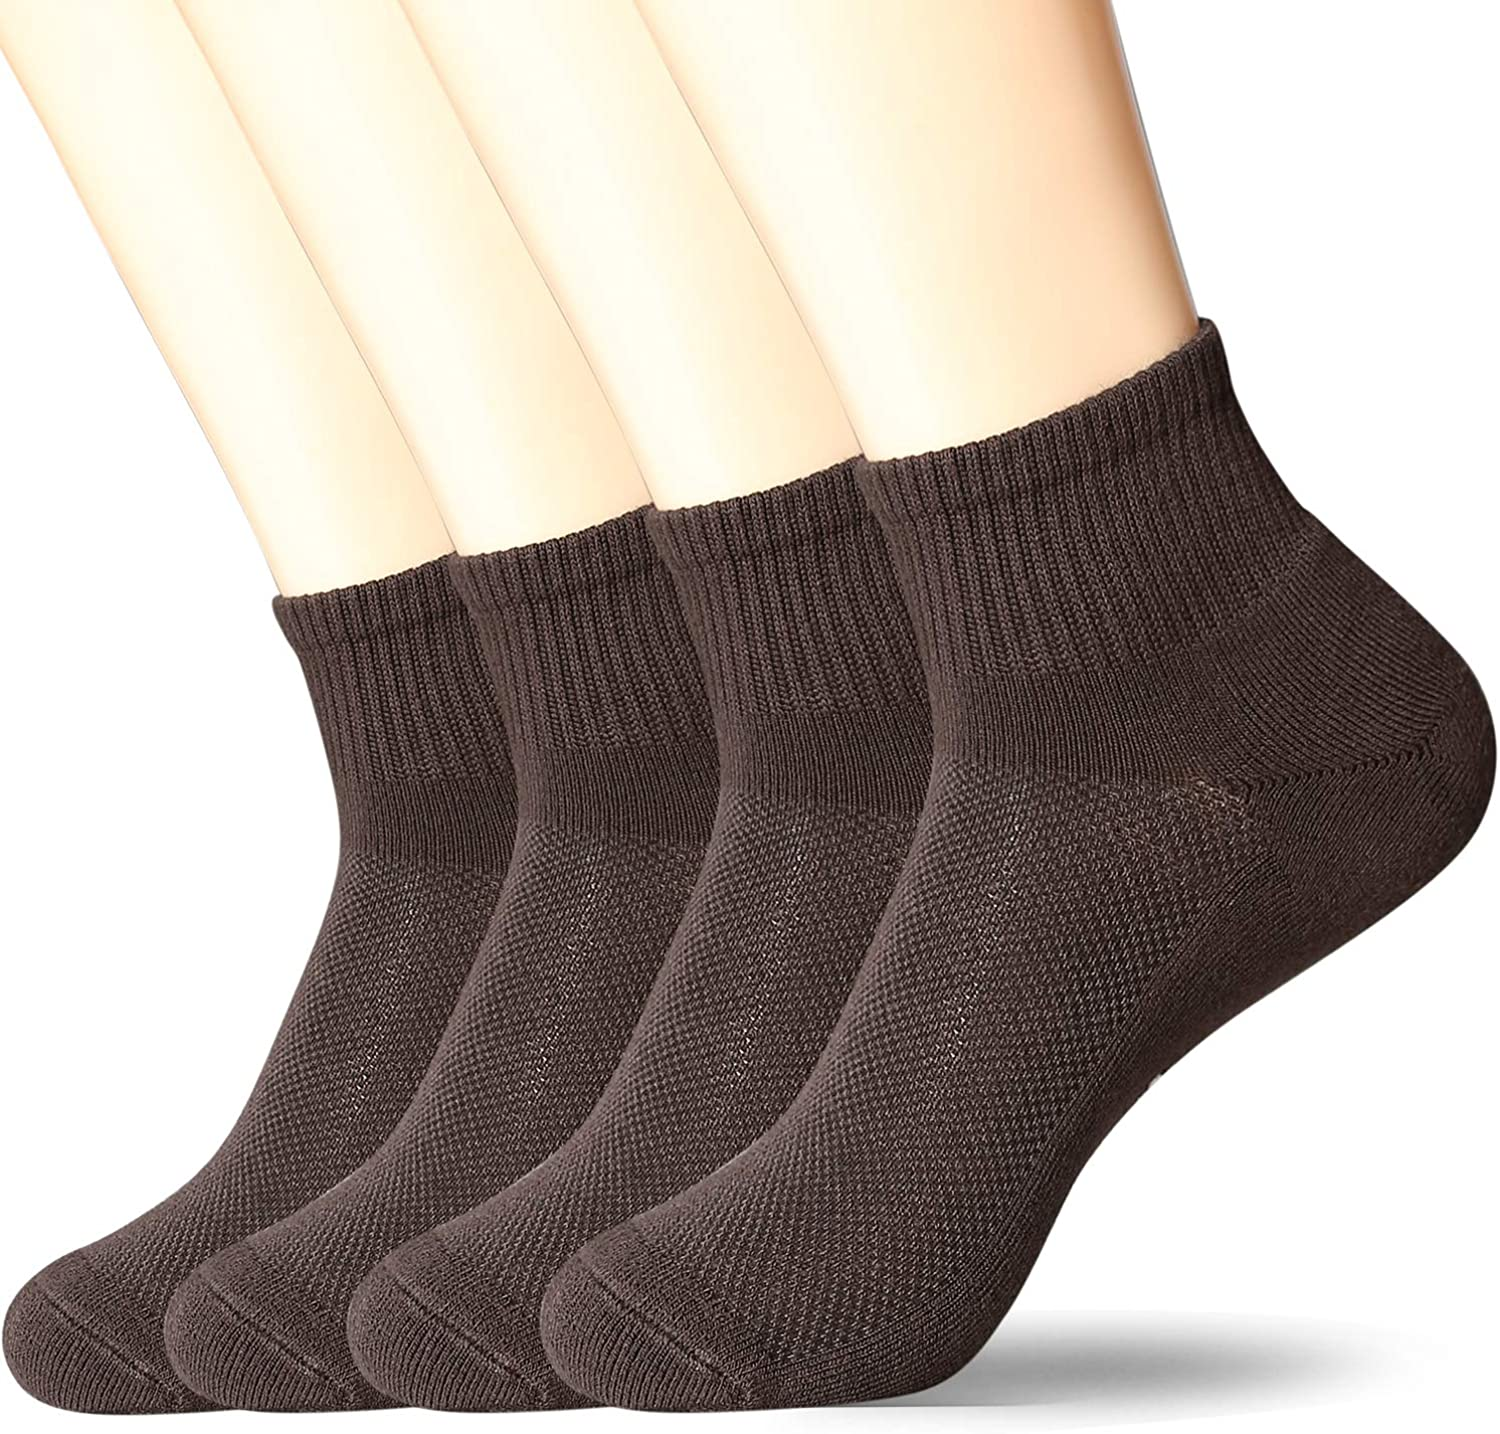 +MD 4 Pack Mens Ultra Comfort Rayon from Bamboo Ankle Socks Cushioned Sole Quarter Dress Socks